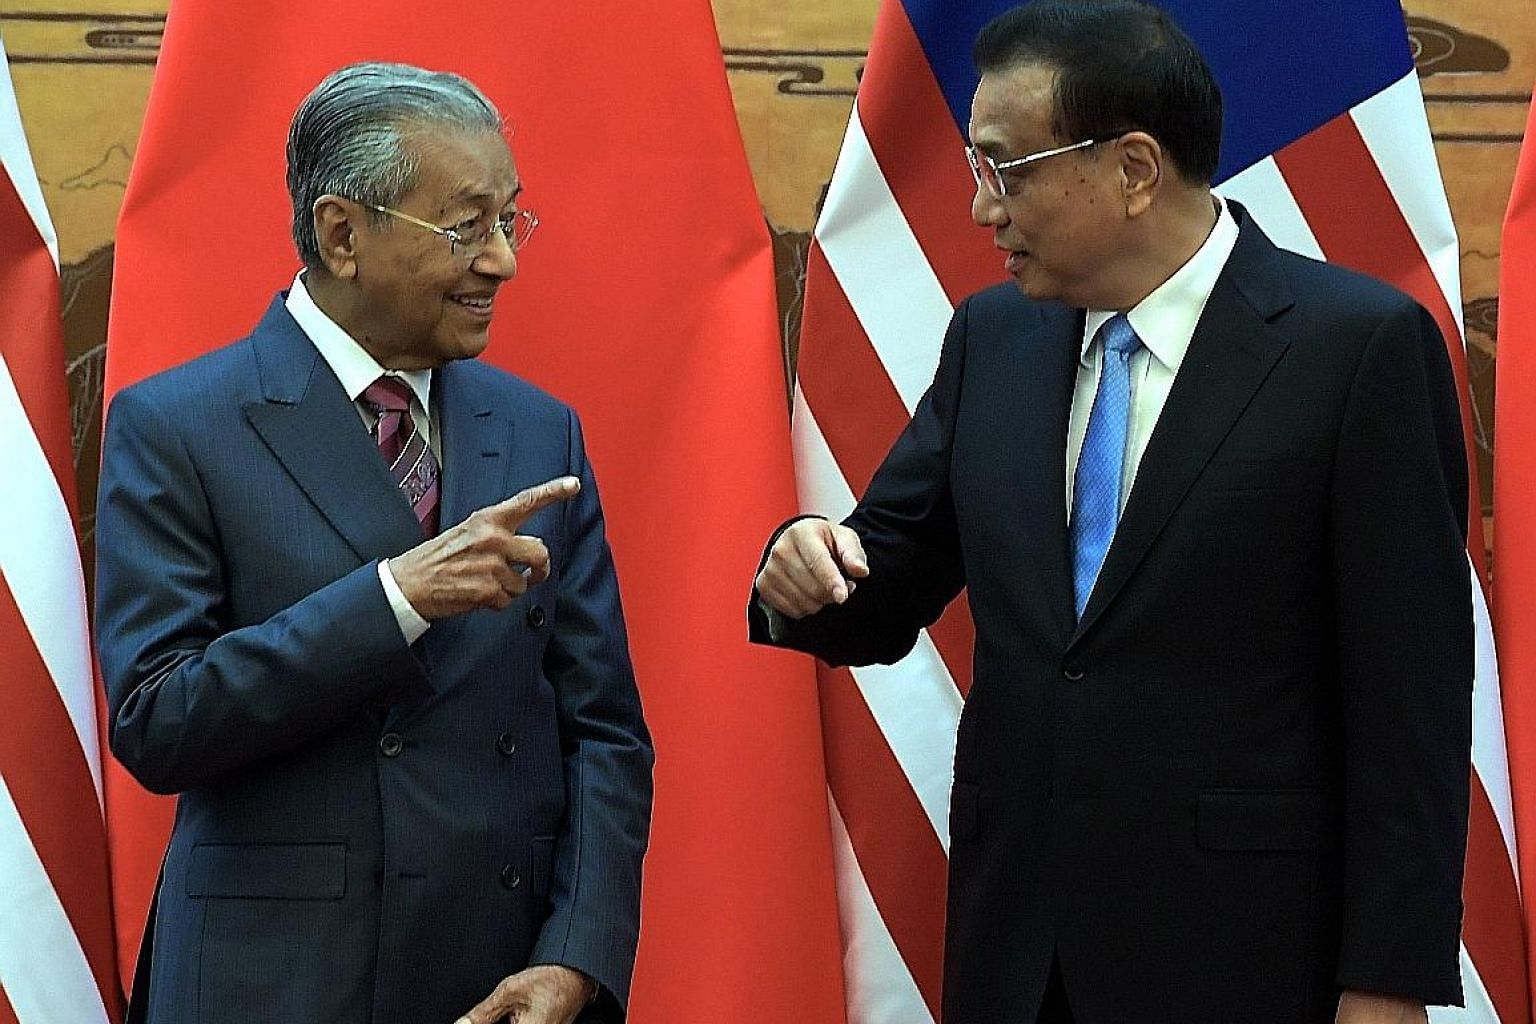 Malaysian Prime Minister Mahathir Mohamad with Chinese Premier Li Keqiang at the Great Hall of the People in Beijing on Monday.